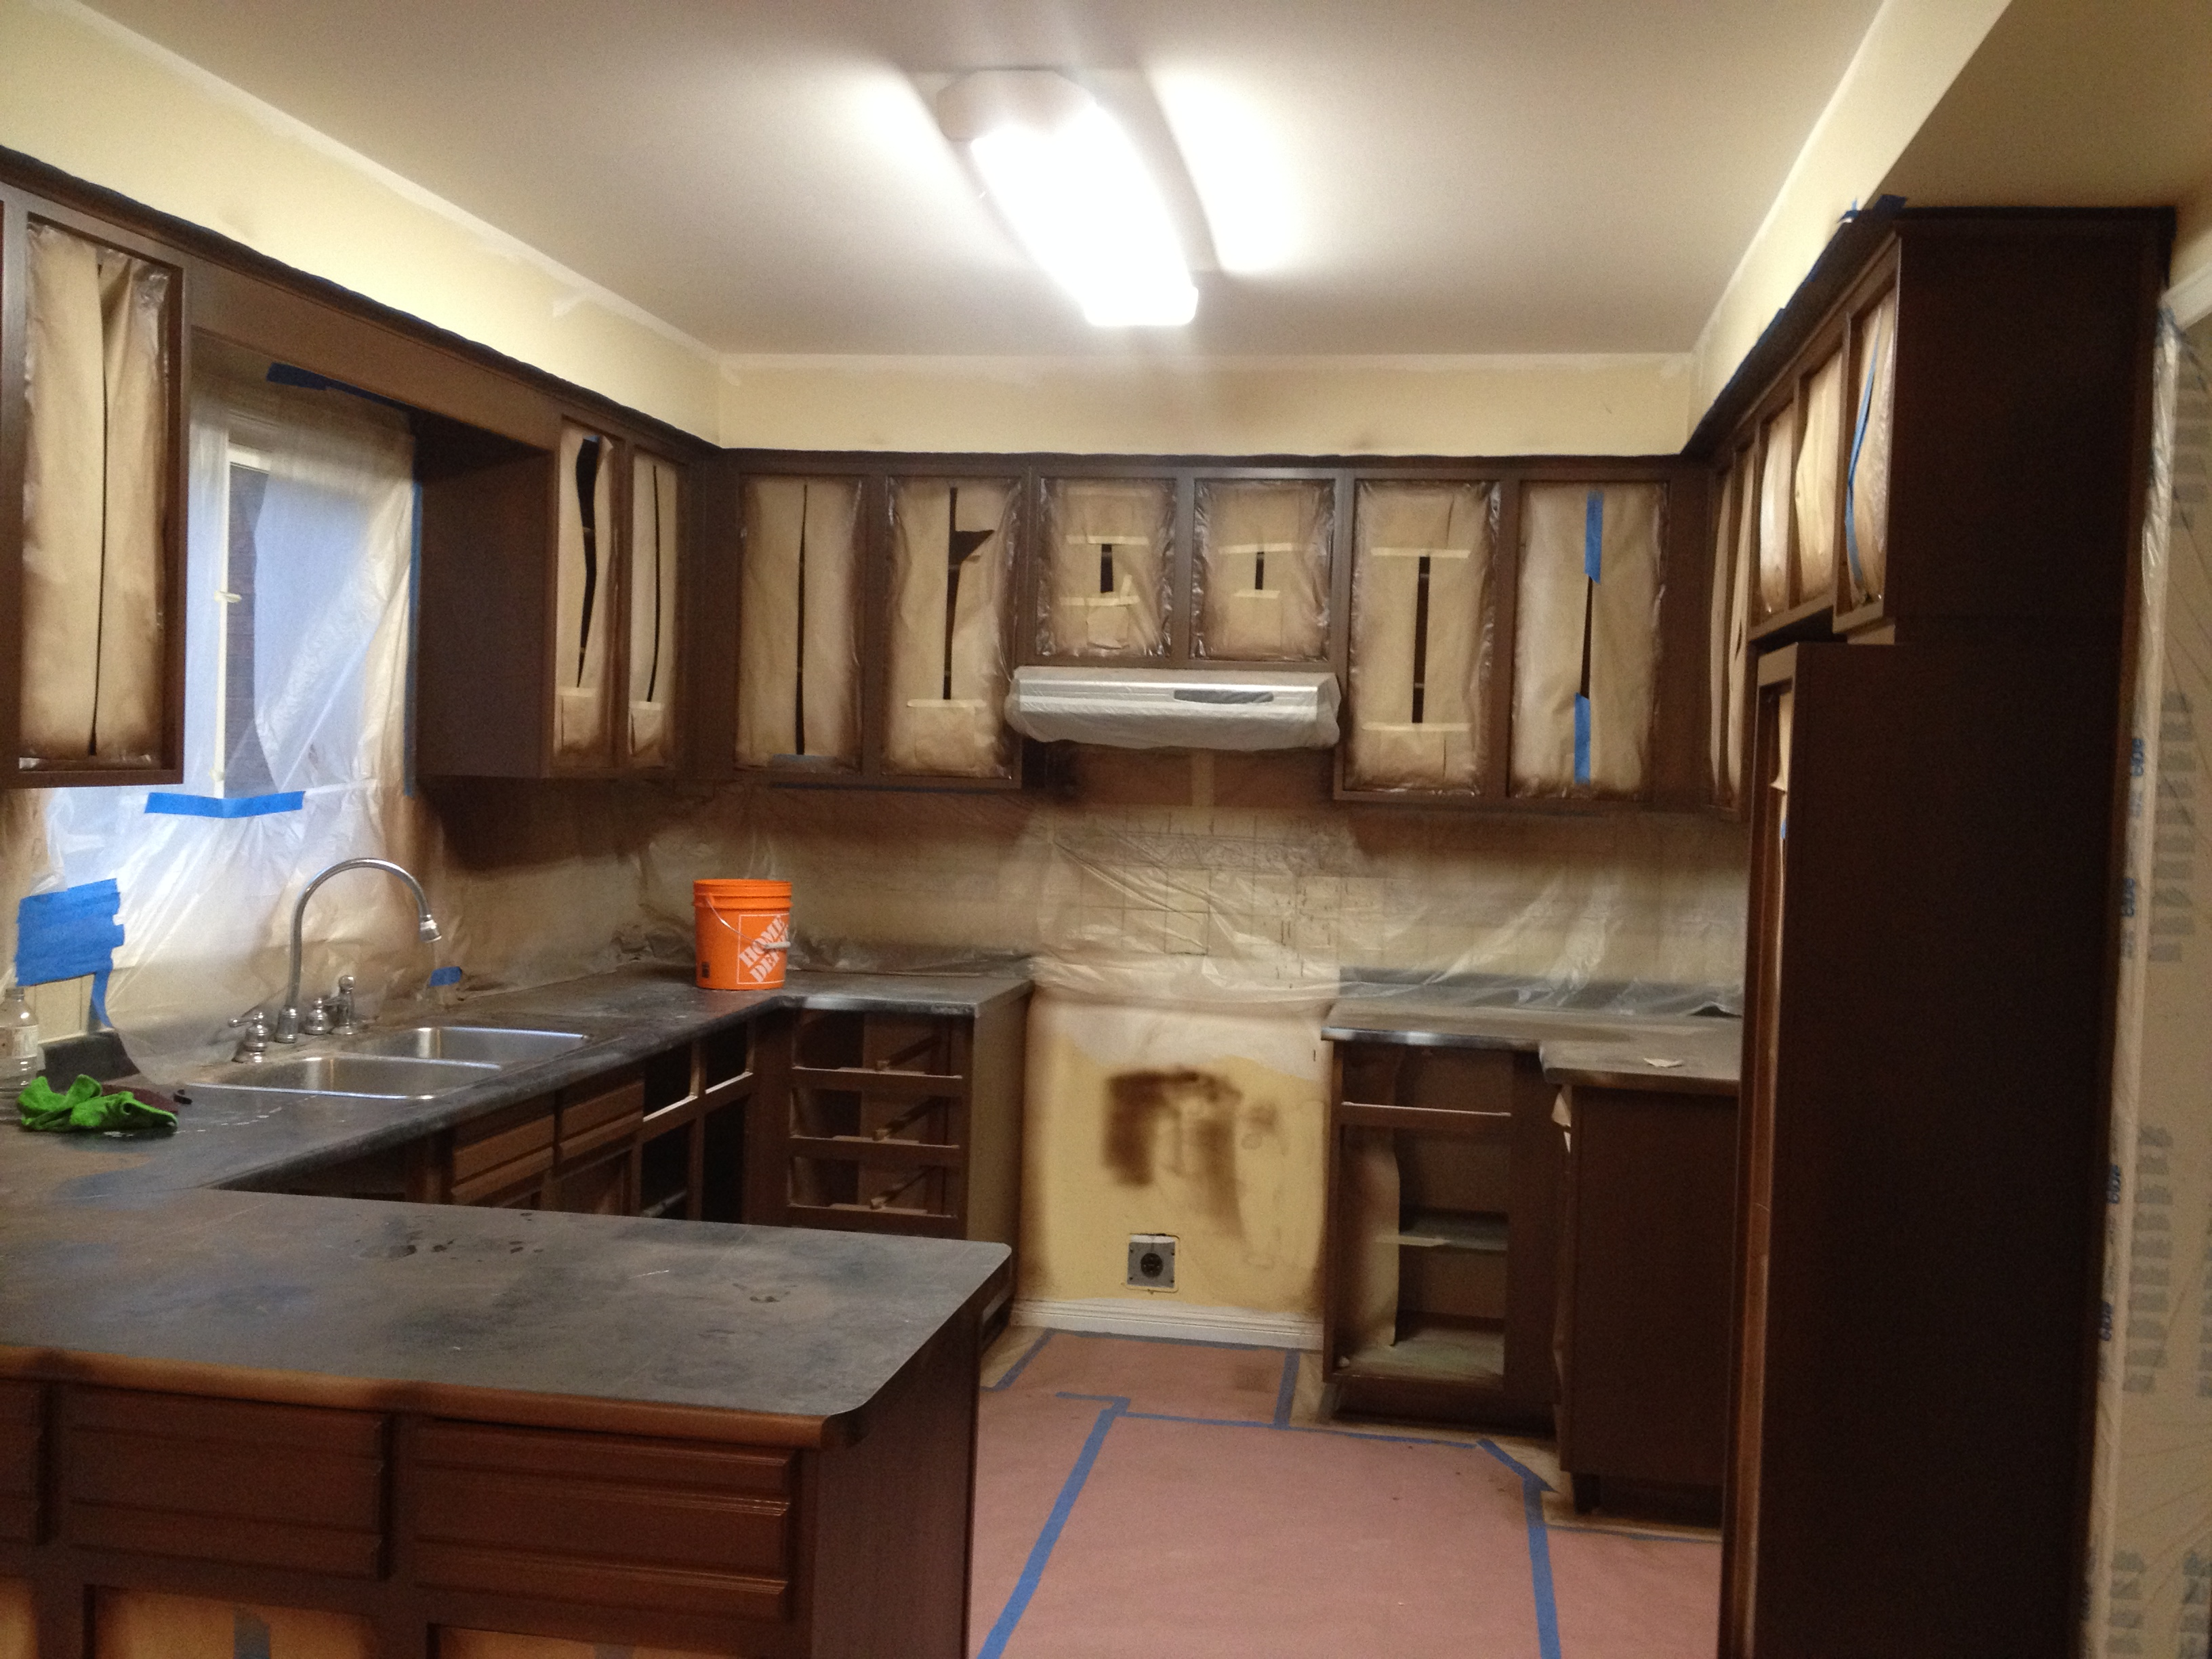 Spary Painted Kitchen Cabinet Carcasses